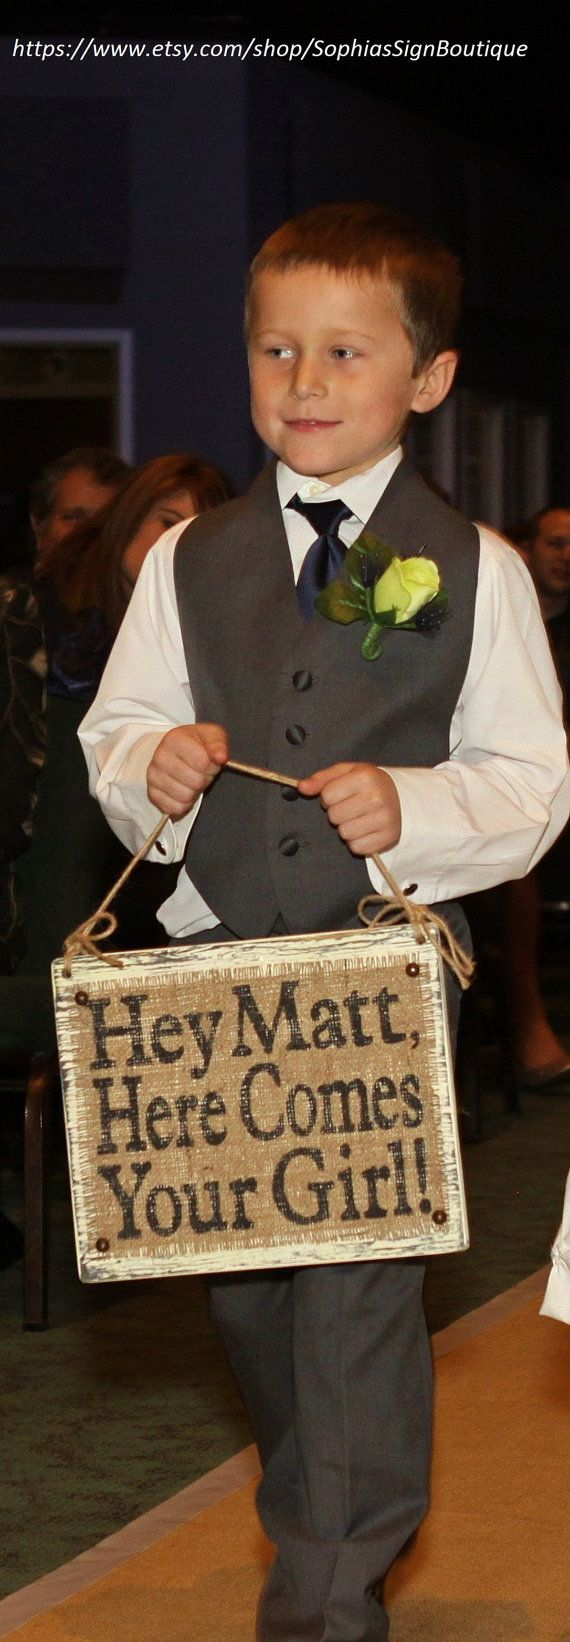 Hey, I found this really awesome Etsy listing at https://www.etsy.com/listing/164742191/here-comes-your-girl-wedding-sign-aisle